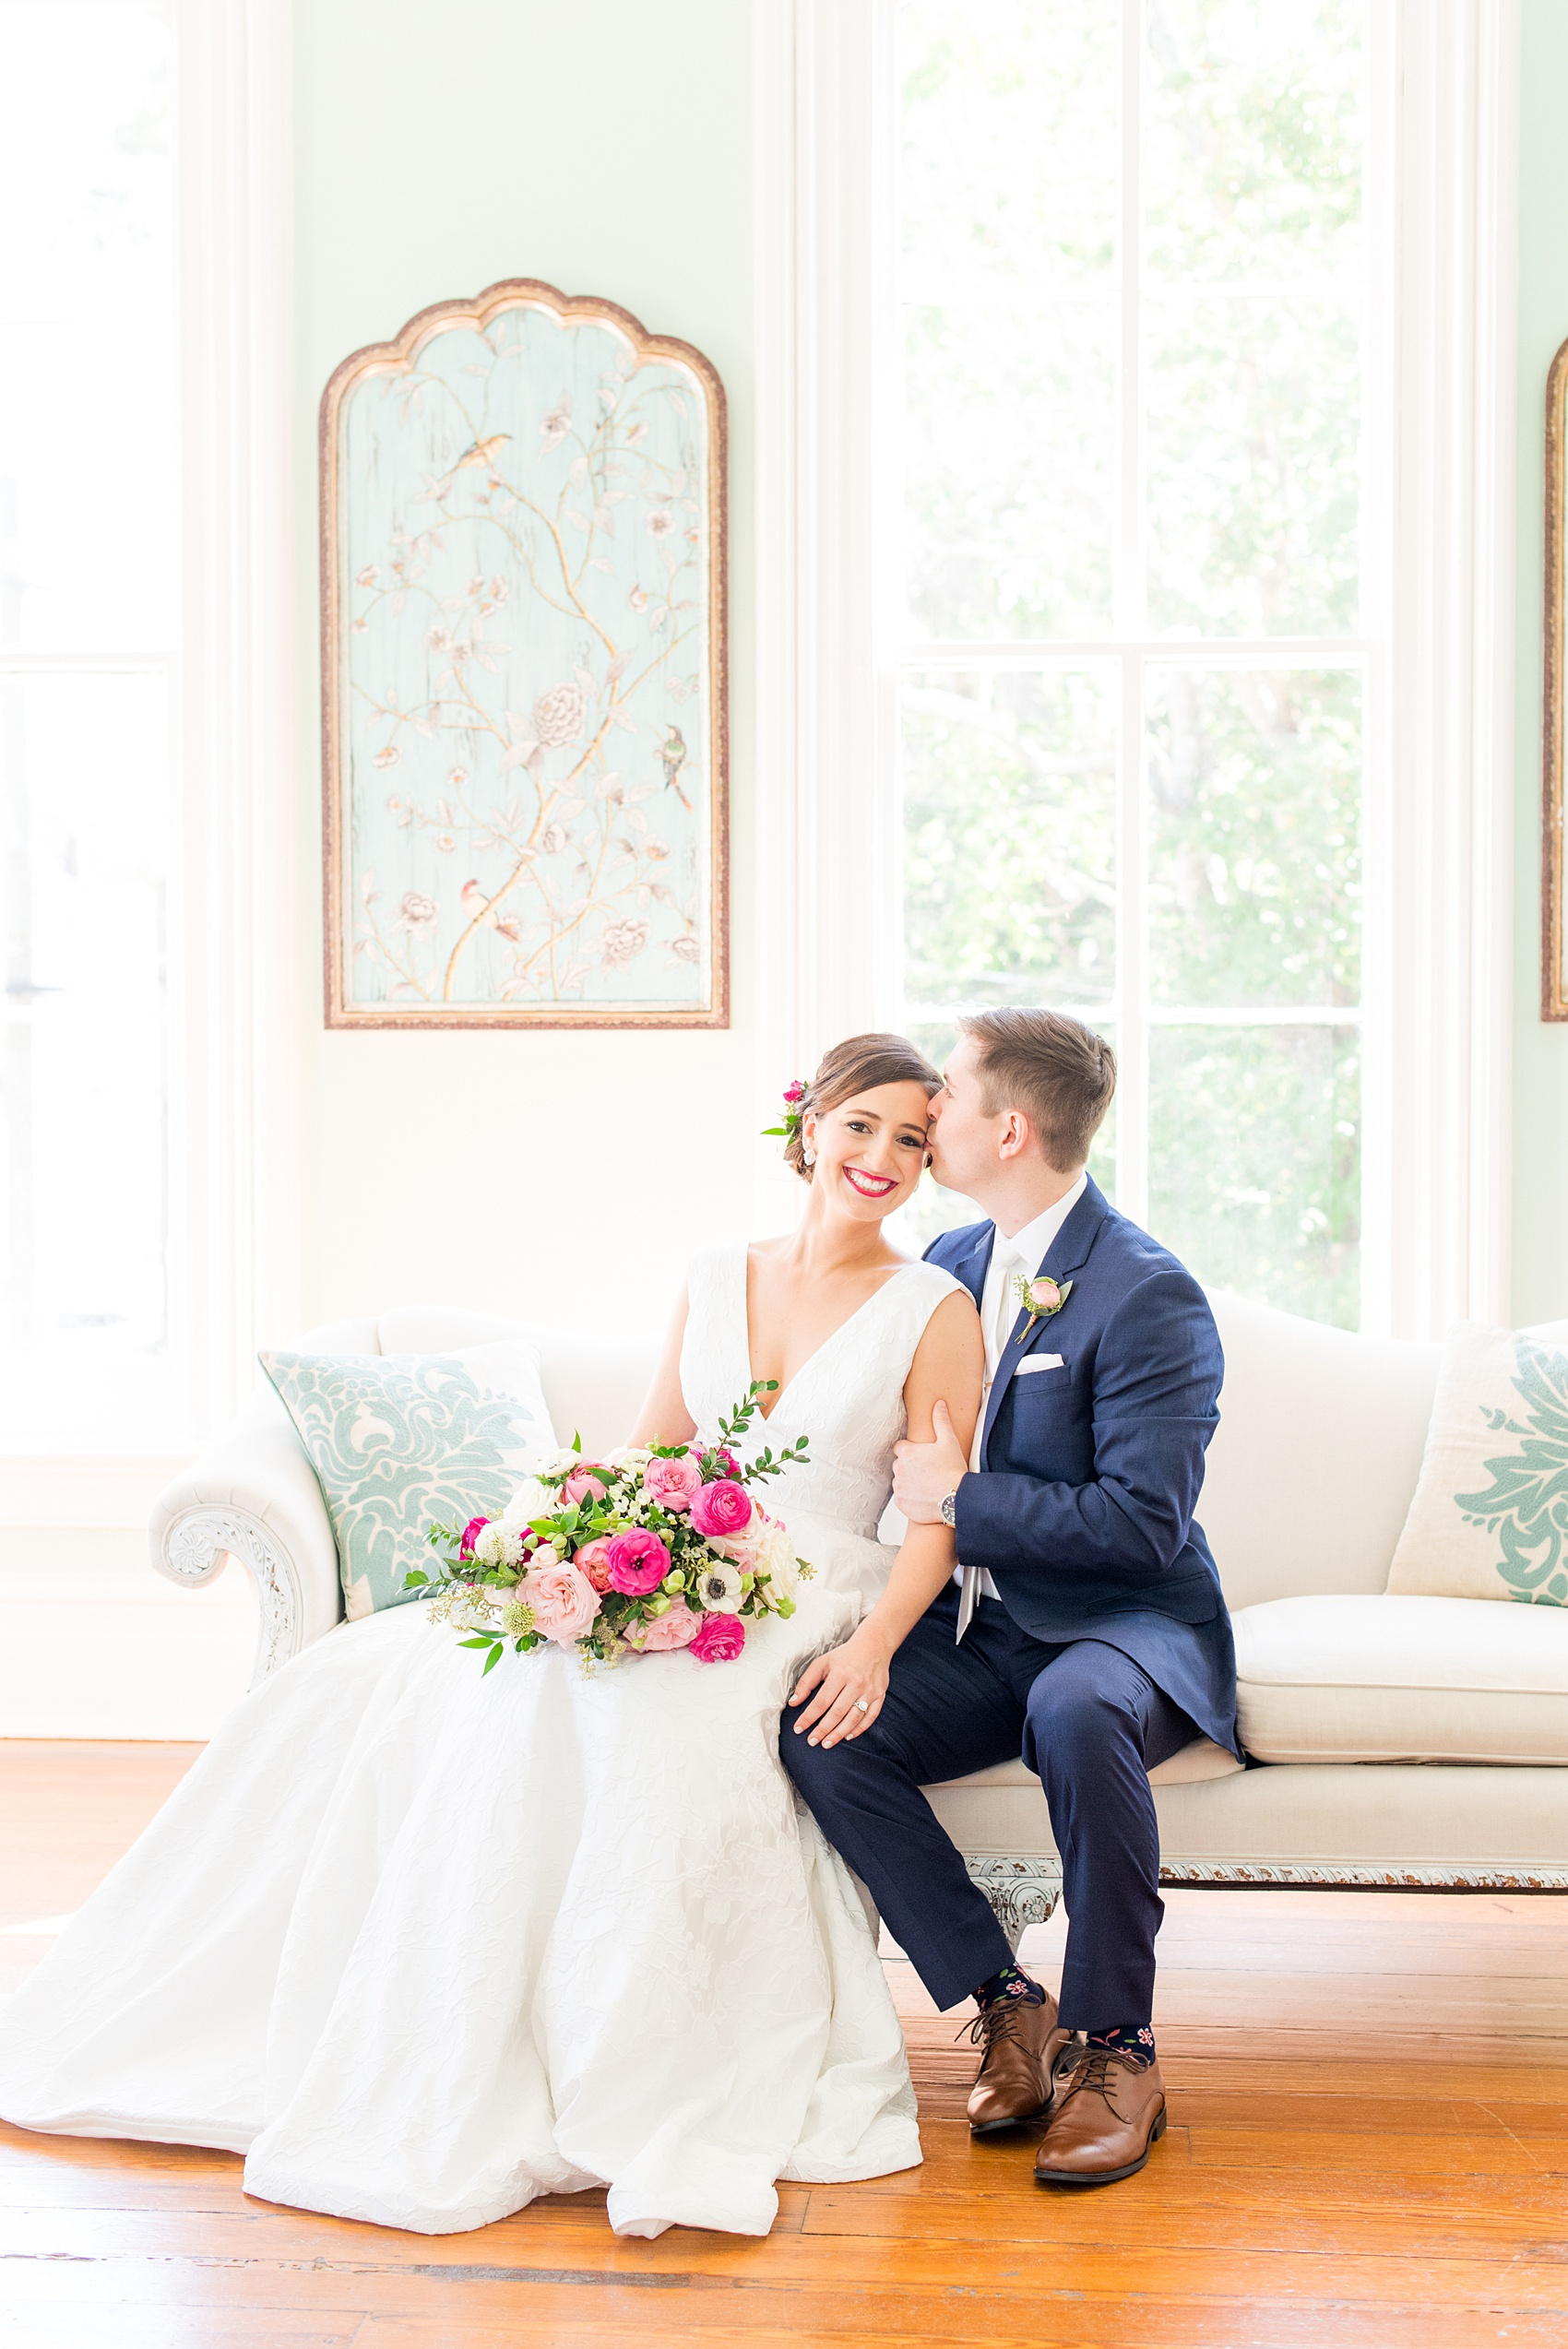 Mikkel Paige Photography pictures from a wedding at Merrimon-Wynne House in Raleigh, NC. Photo of the bride and groom in the bridal suite.